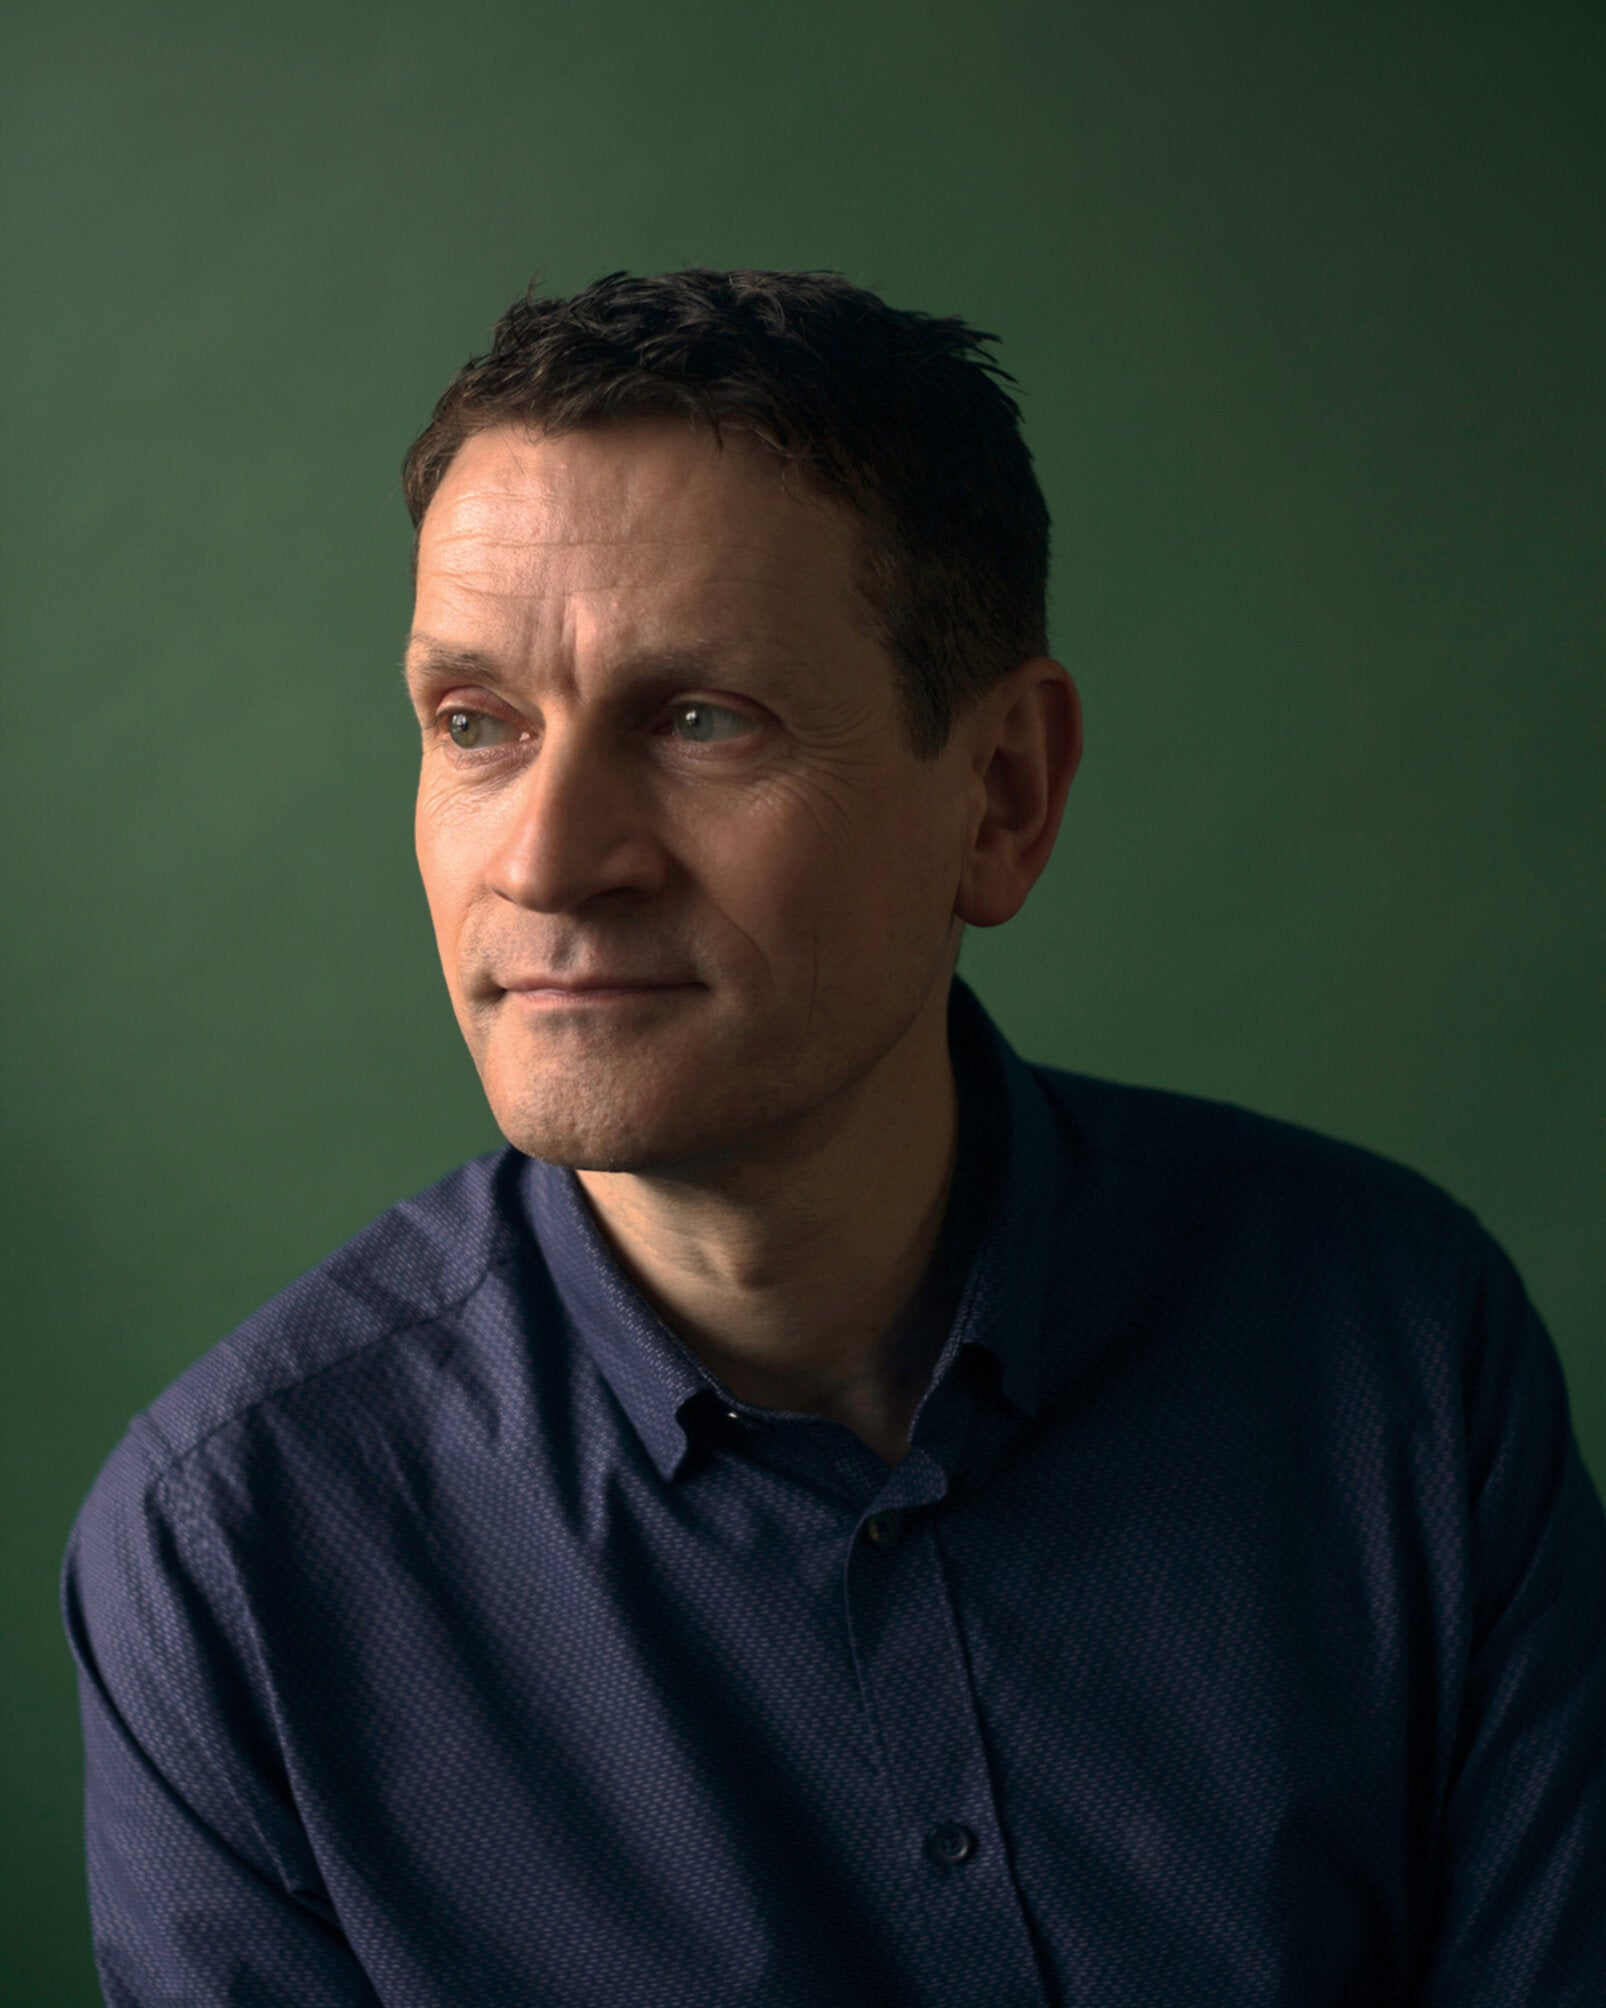 """""""Blue ticks were a mistake"""": Bruce Daisley on leaving Twitter and fixing workplace culture"""